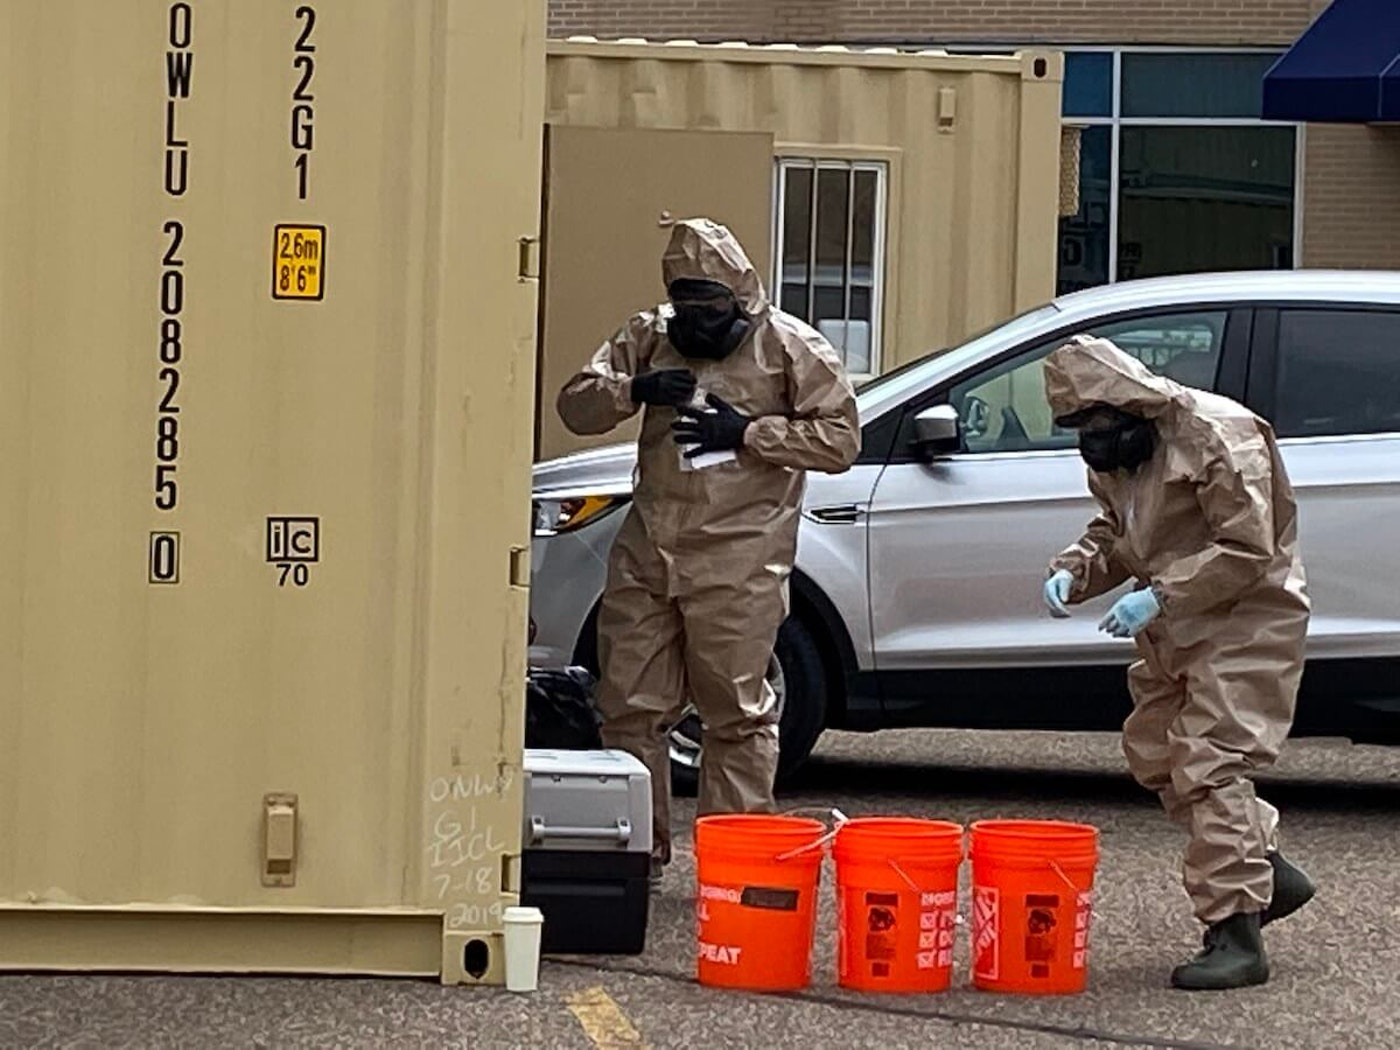 National Guard members conduct COVID-19 tests for attendees at a testing event Sunday in Eau Claire.